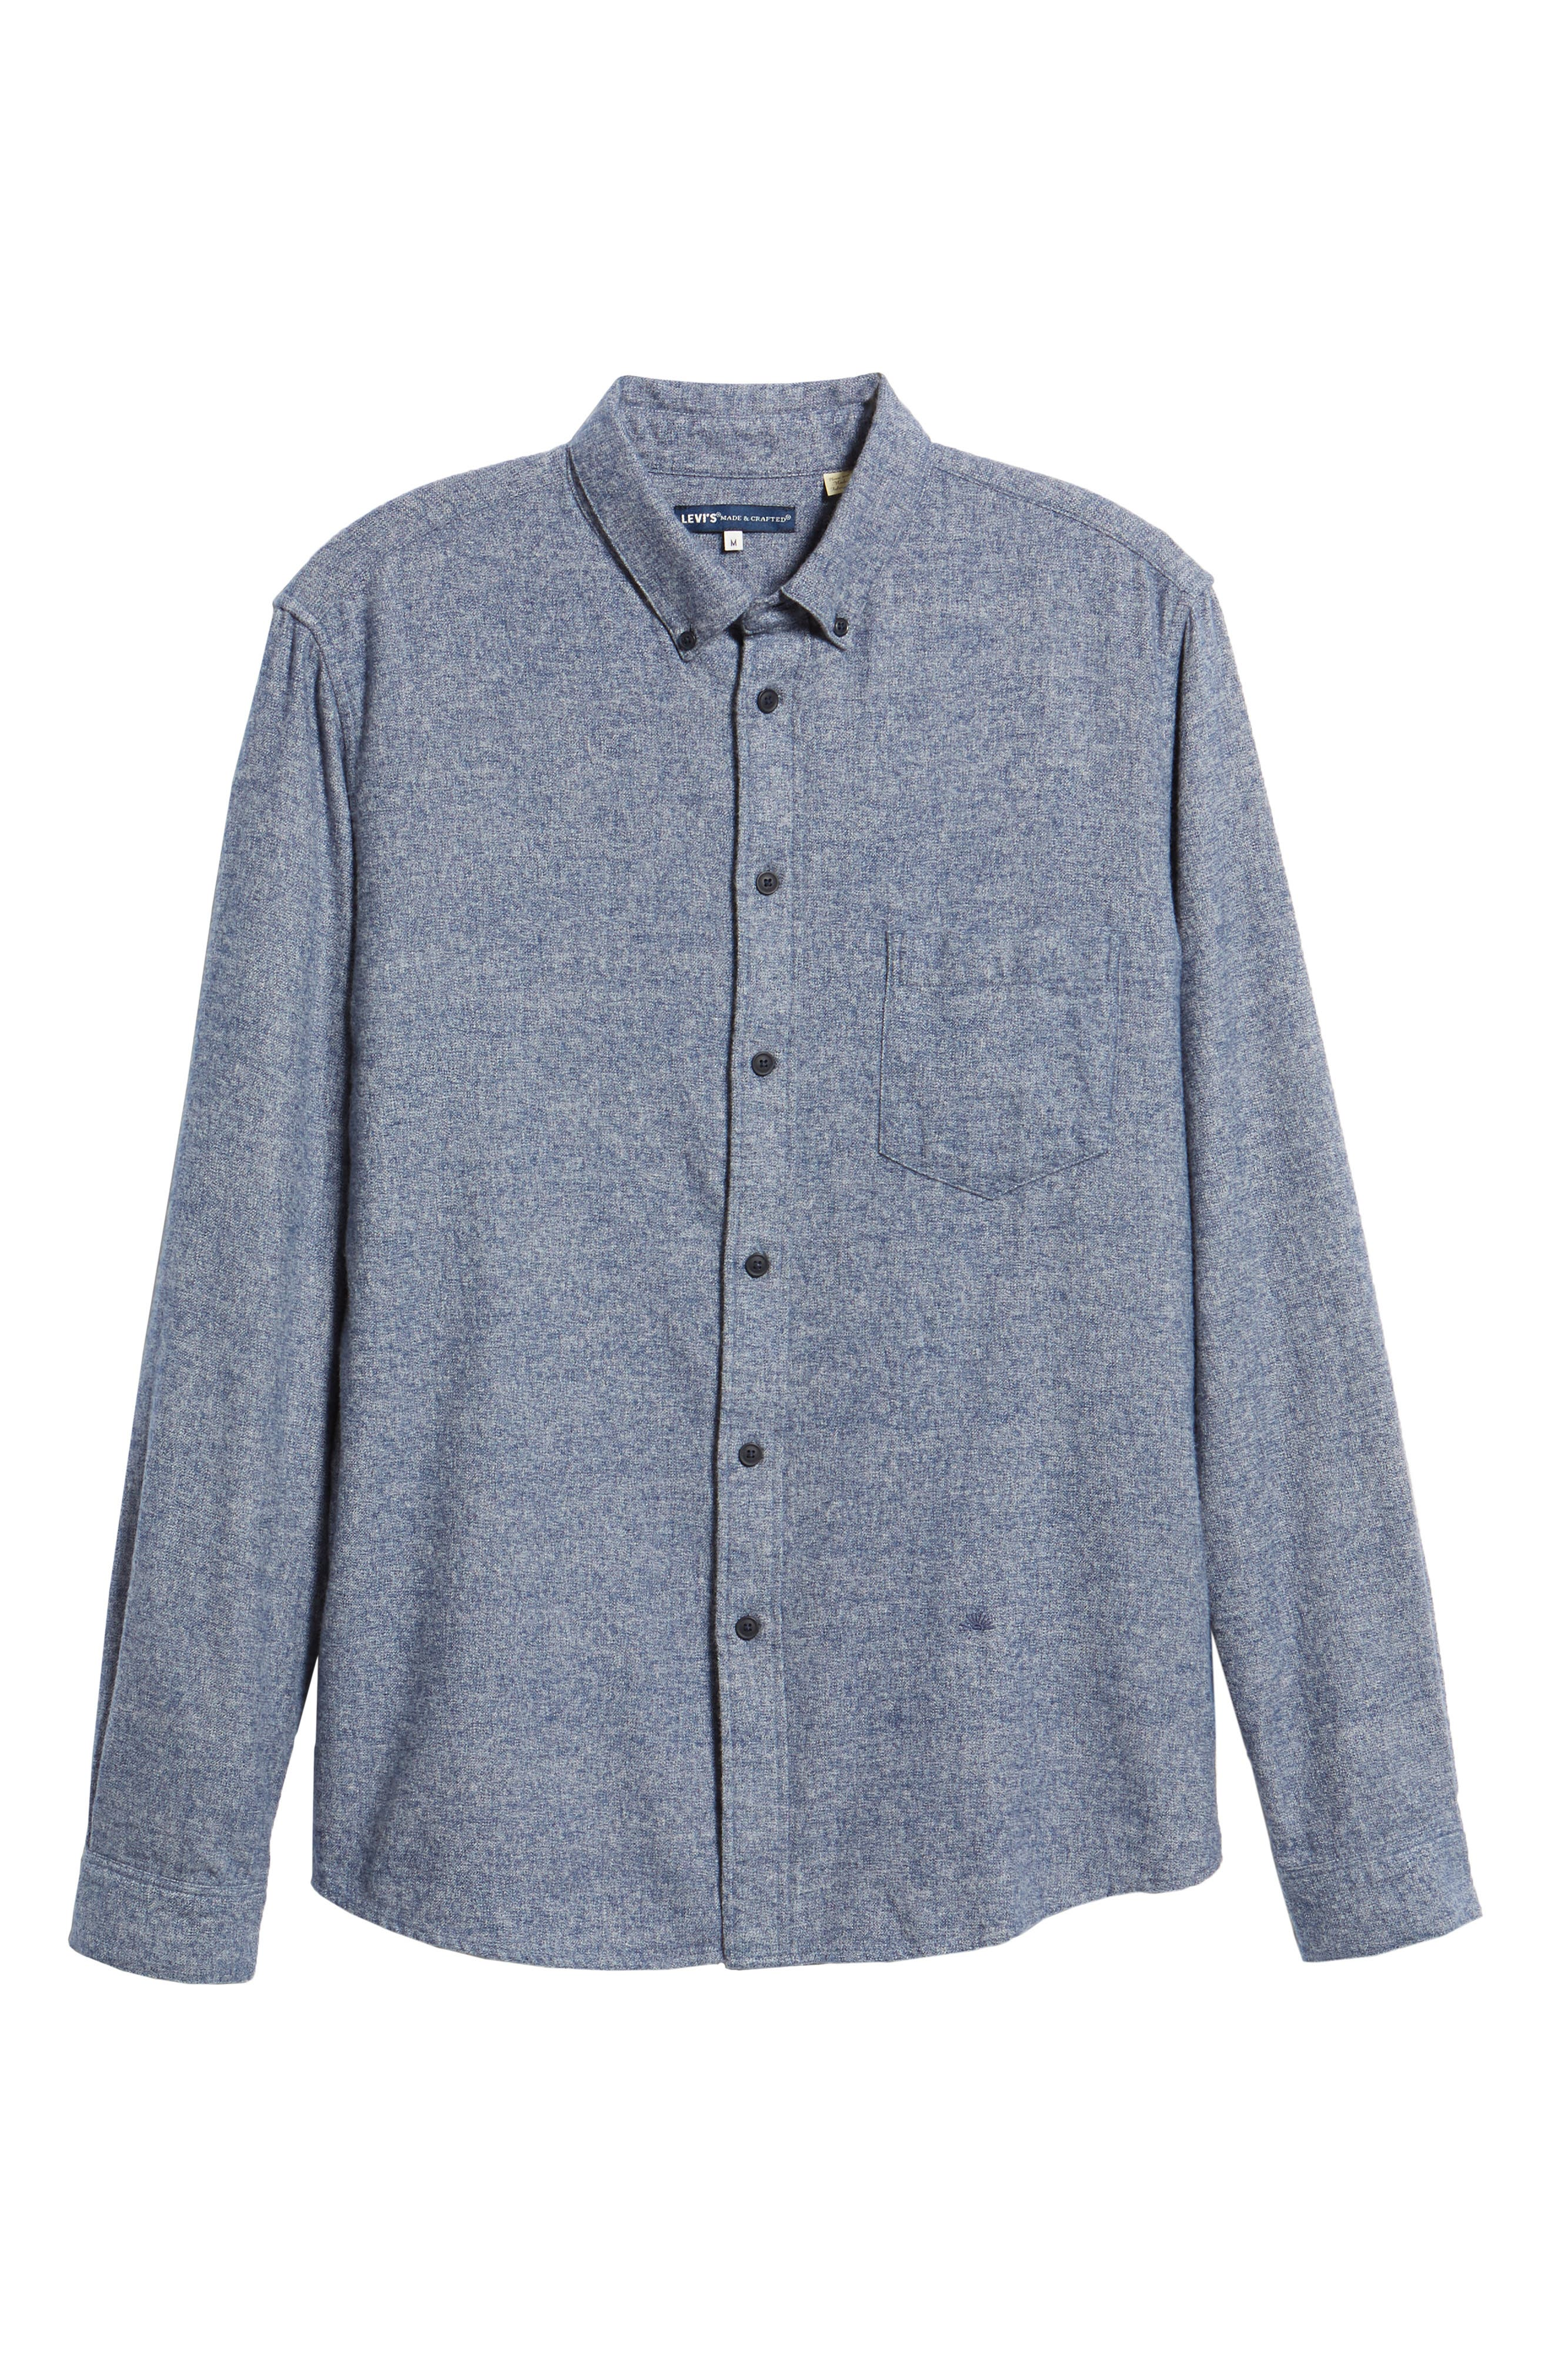 Levi's<sup>®</sup> Made & Crafted Standard Regular Fit Twill Shirt,                             Alternate thumbnail 5, color,                             400